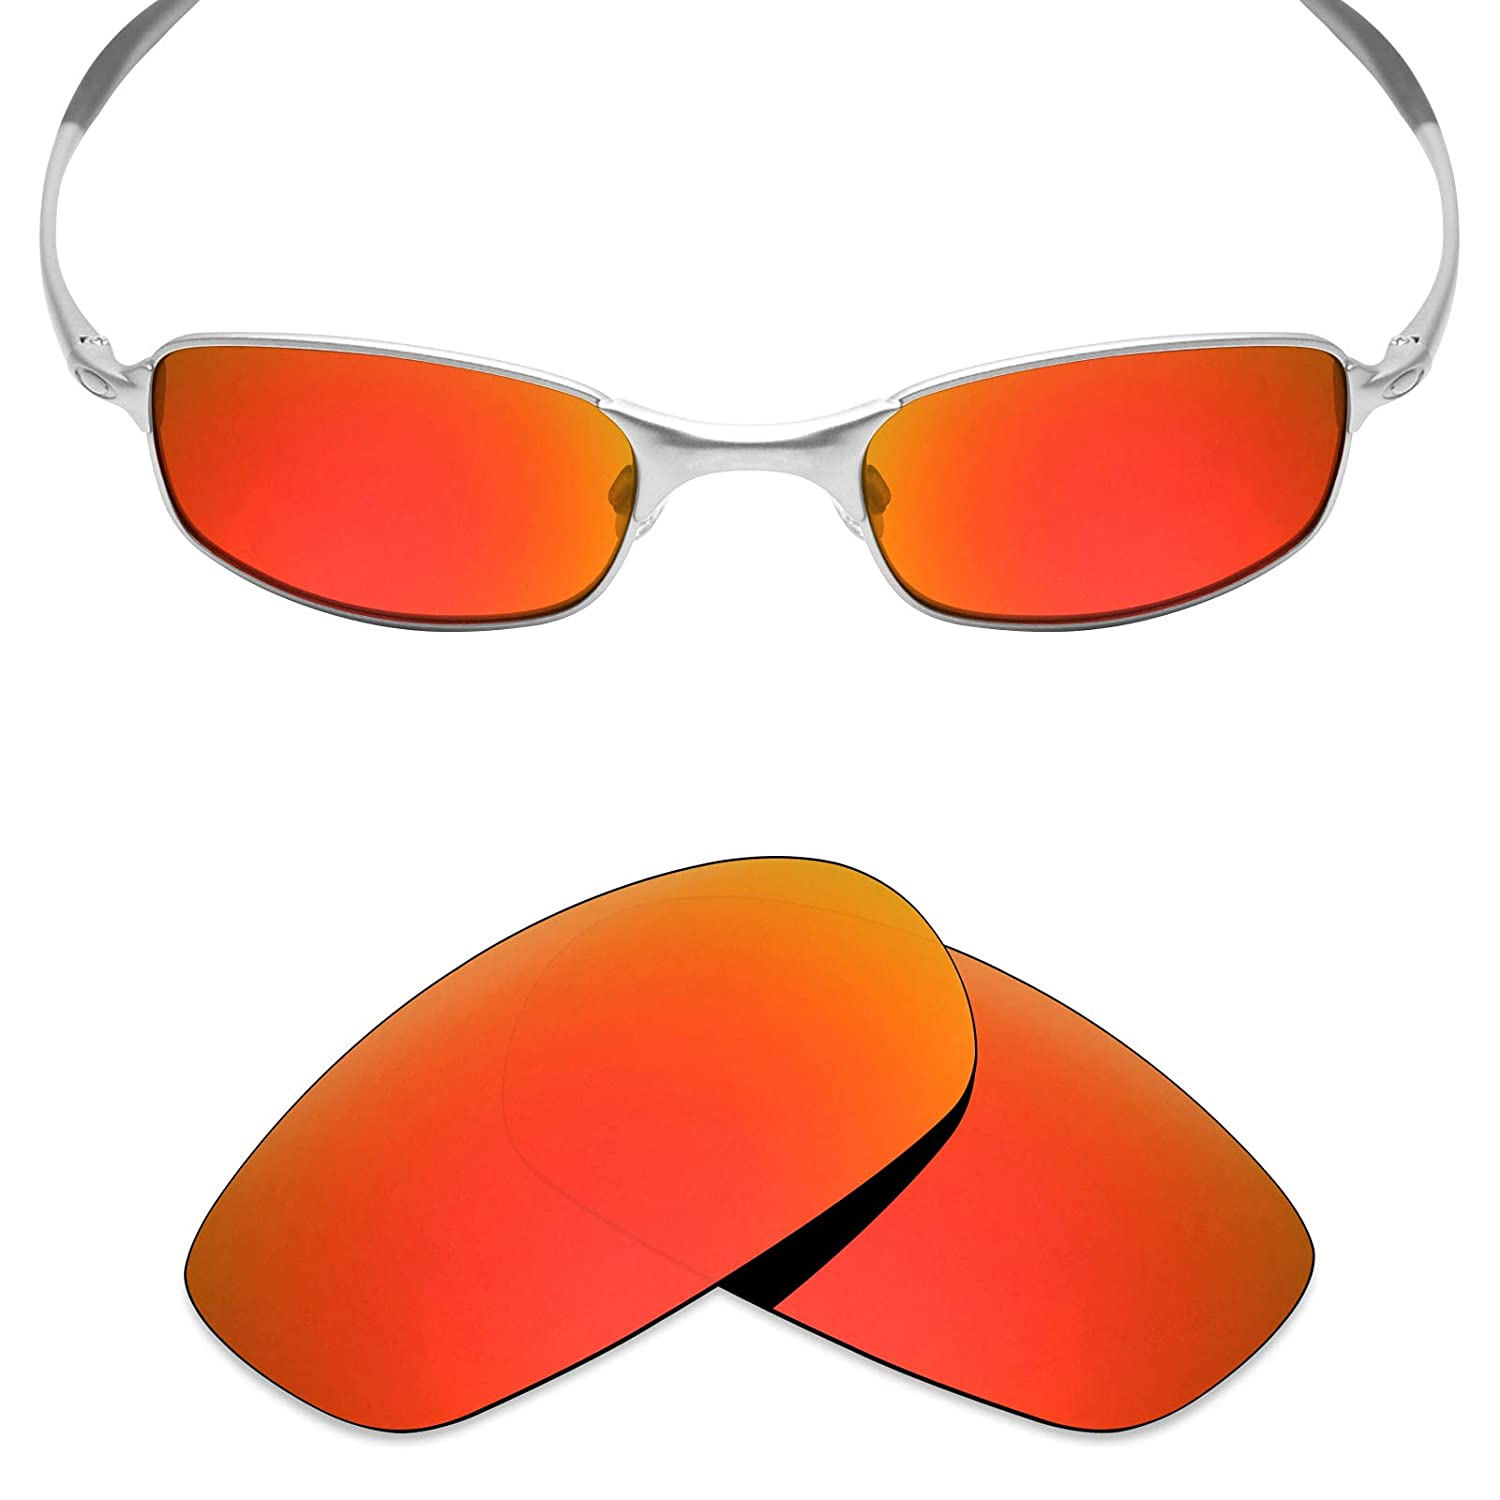 63c7889435 Amazon.com  Mryok Polarized Replacement Lenses for Oakley Square Wire 2.0 -  Fire Red  Clothing